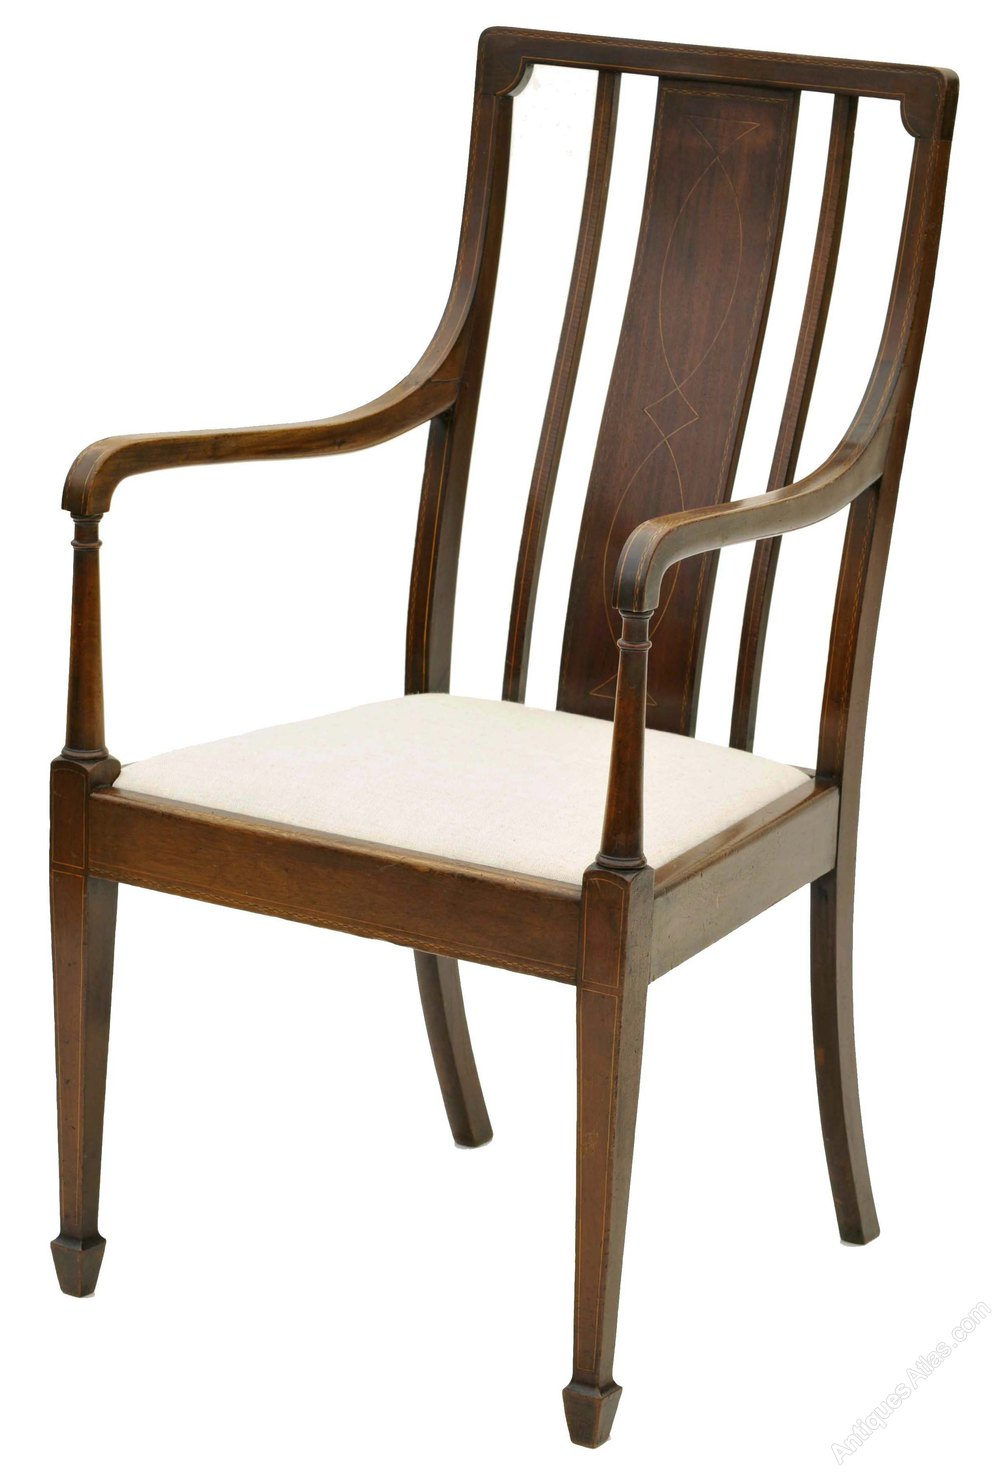 antique dining chairs 8 6 2 edwardian mahogany walnut dining chairs 1268